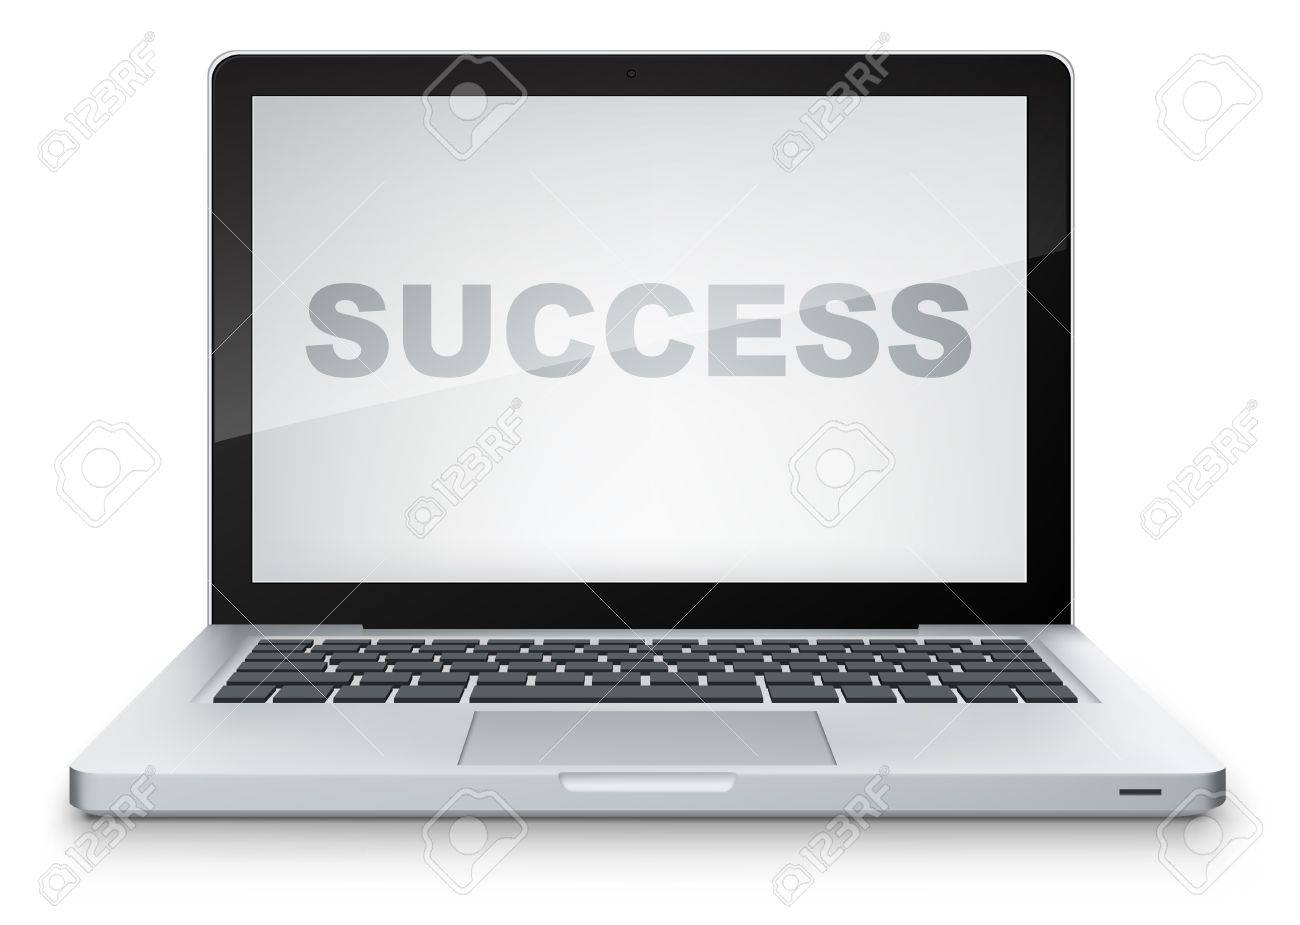 Laptop Stock Vector - 13533945